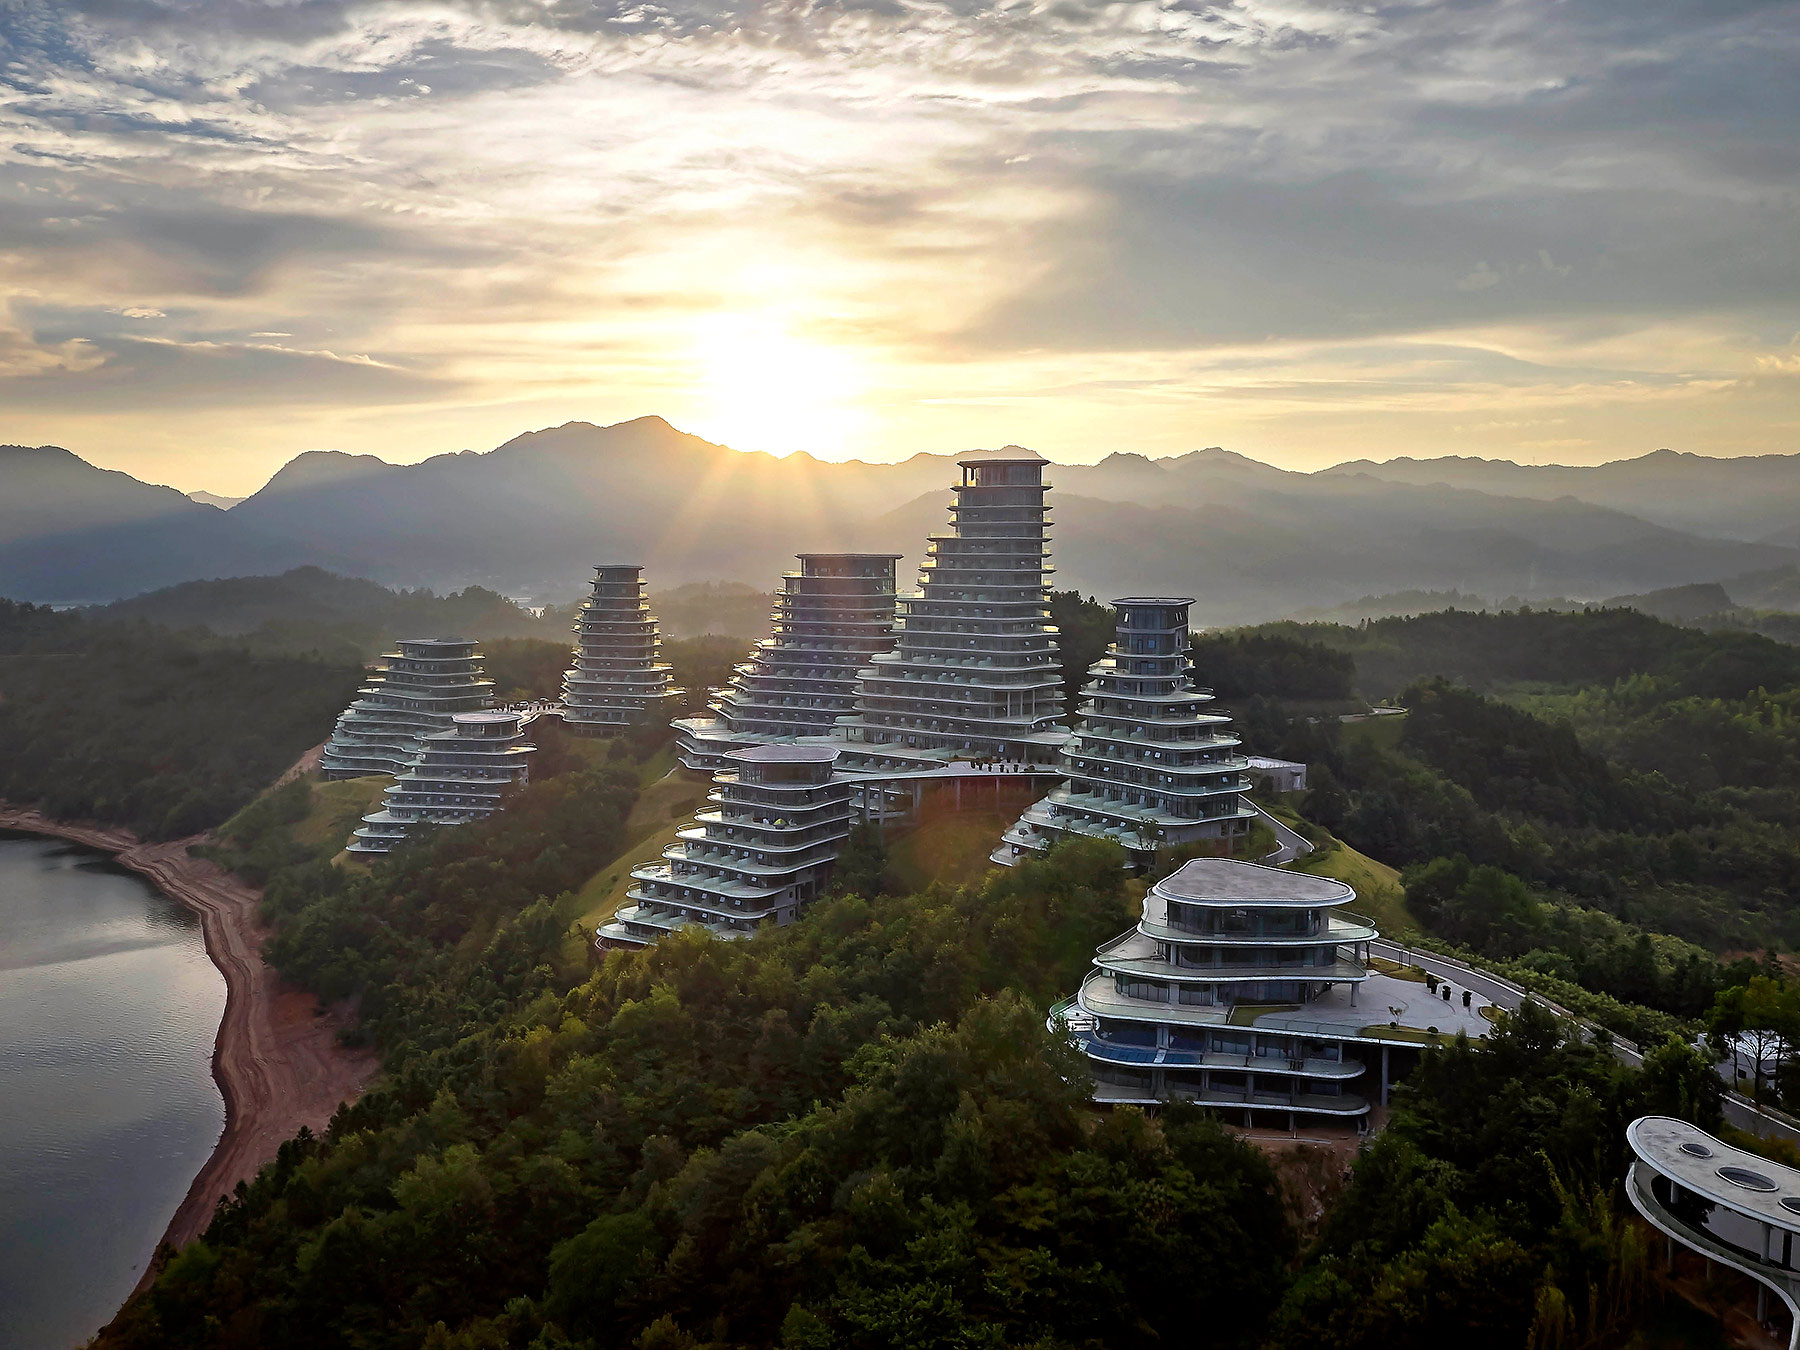 La arquitectura natural de Huangshan Mountain Village